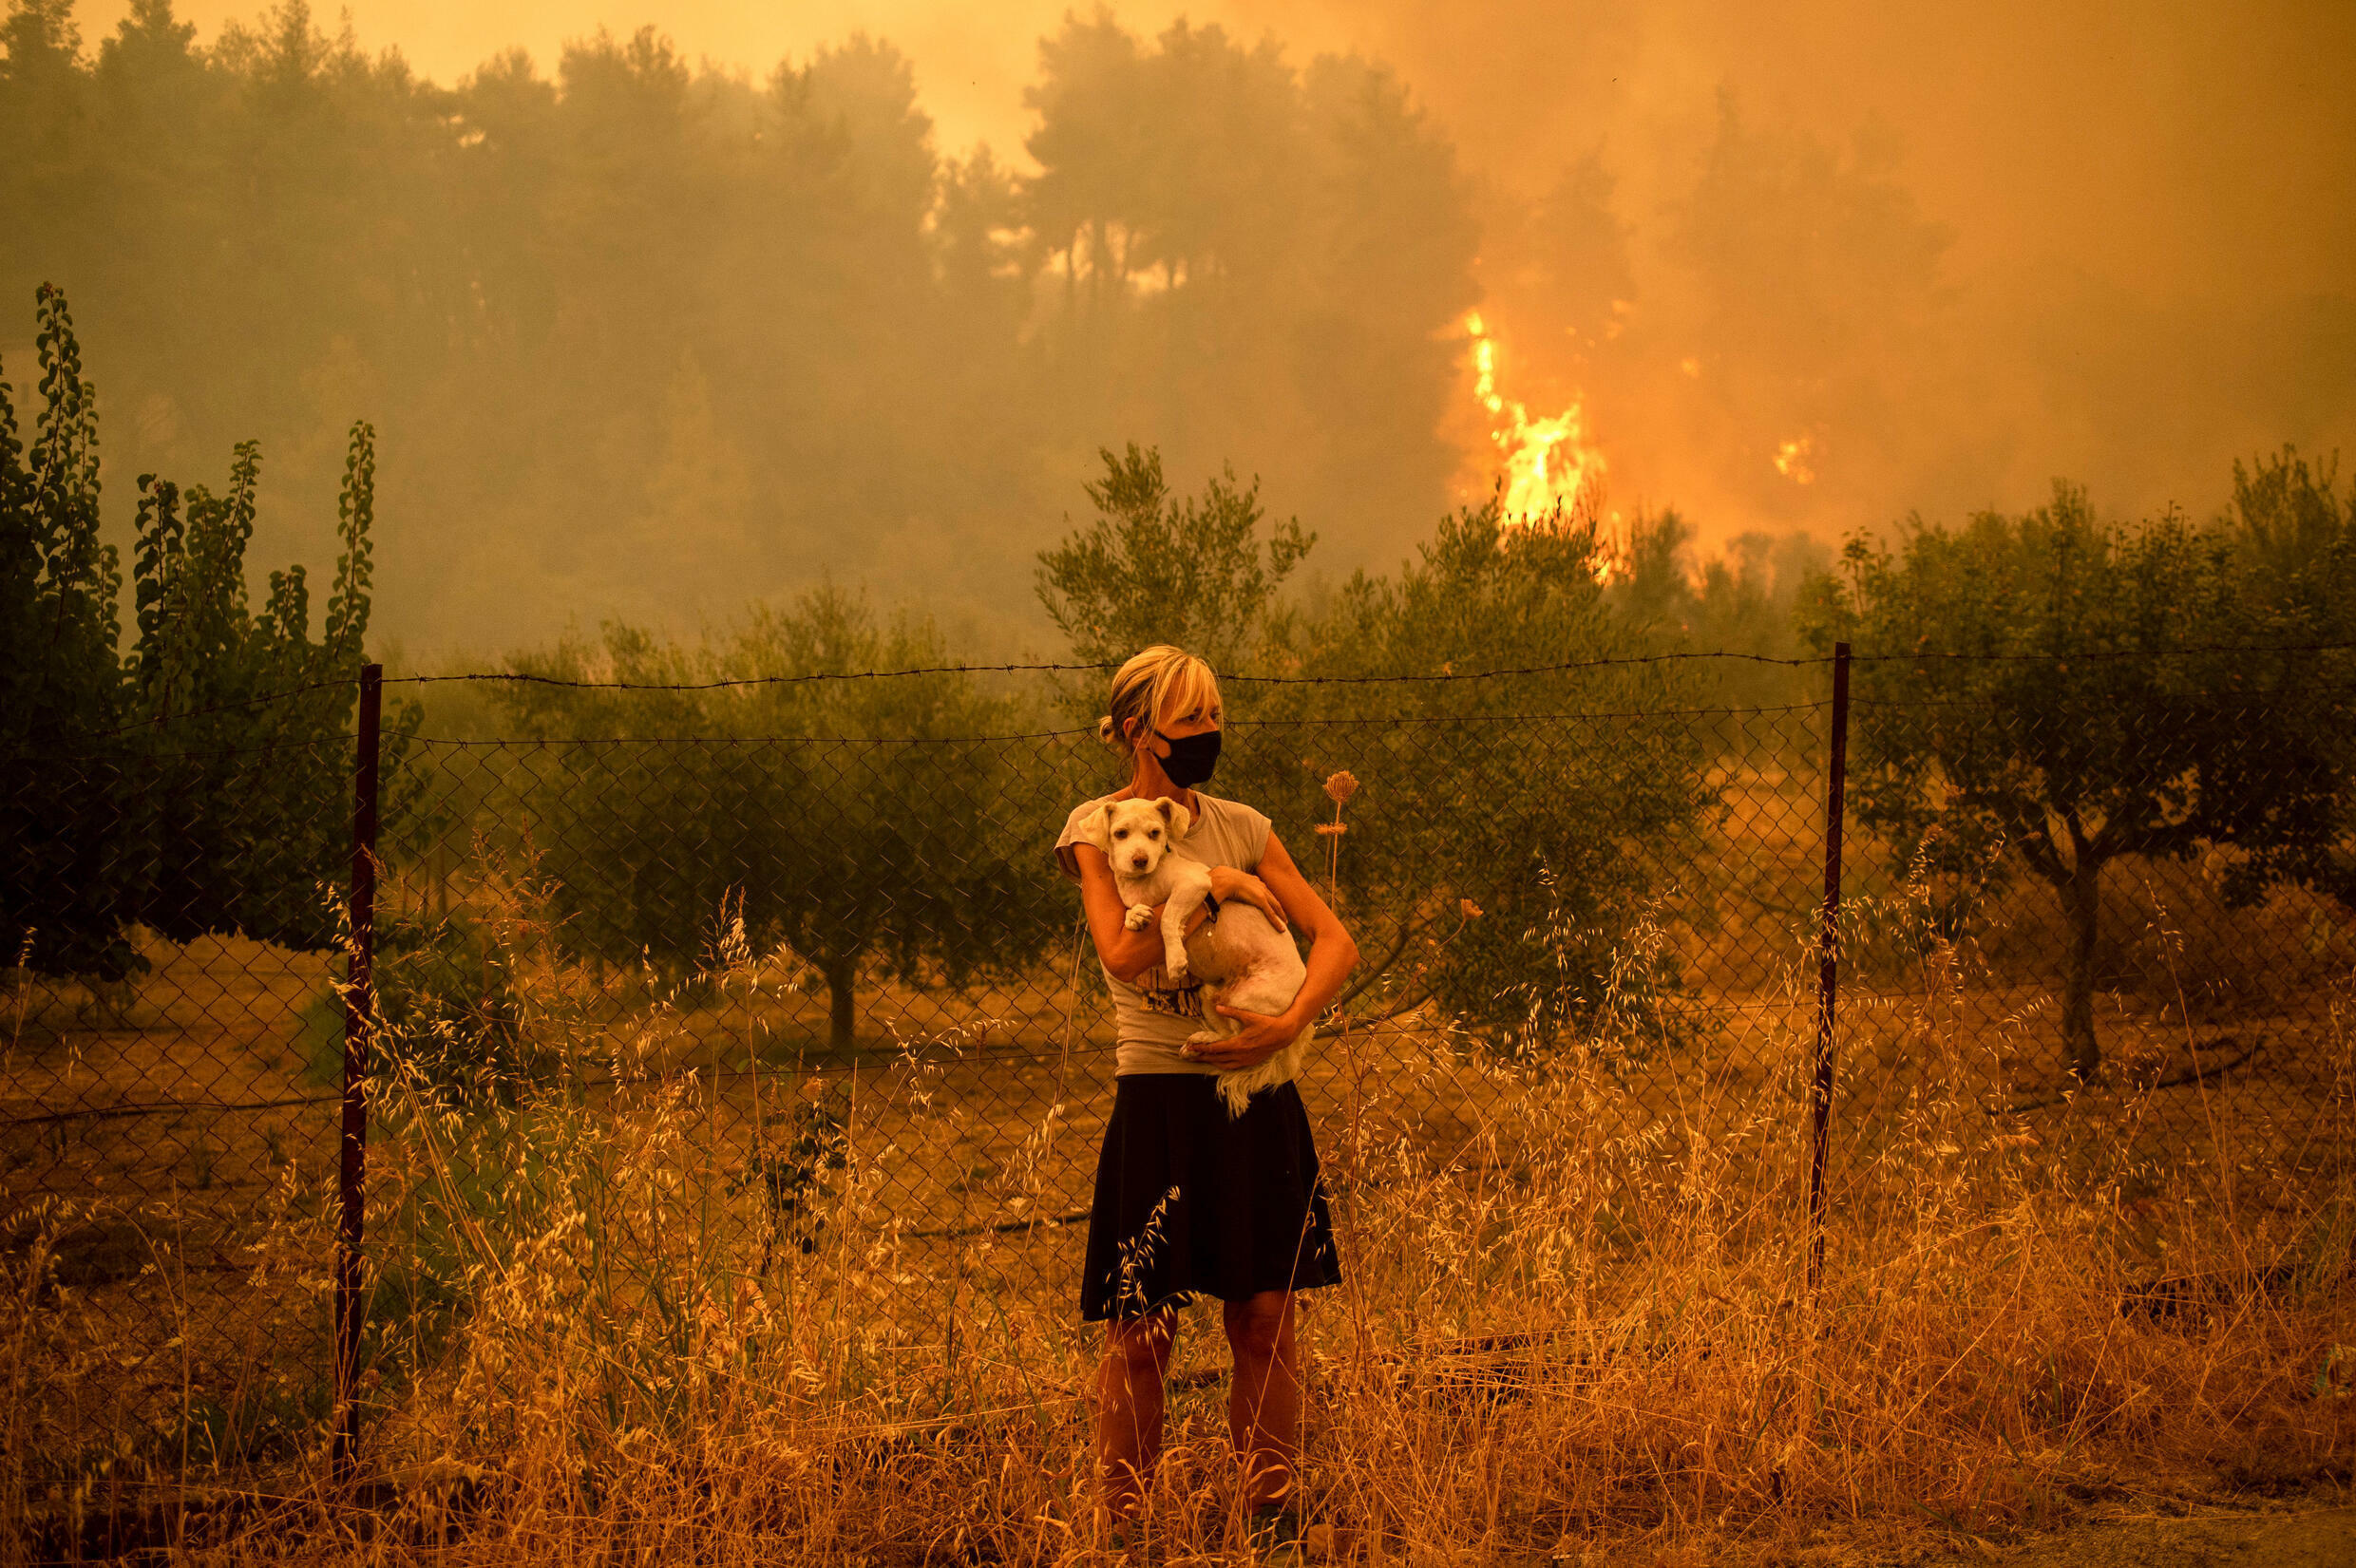 Forest fires on the island of Evia have charred pine forests, destroyed homes and forced tourists and locals to flee